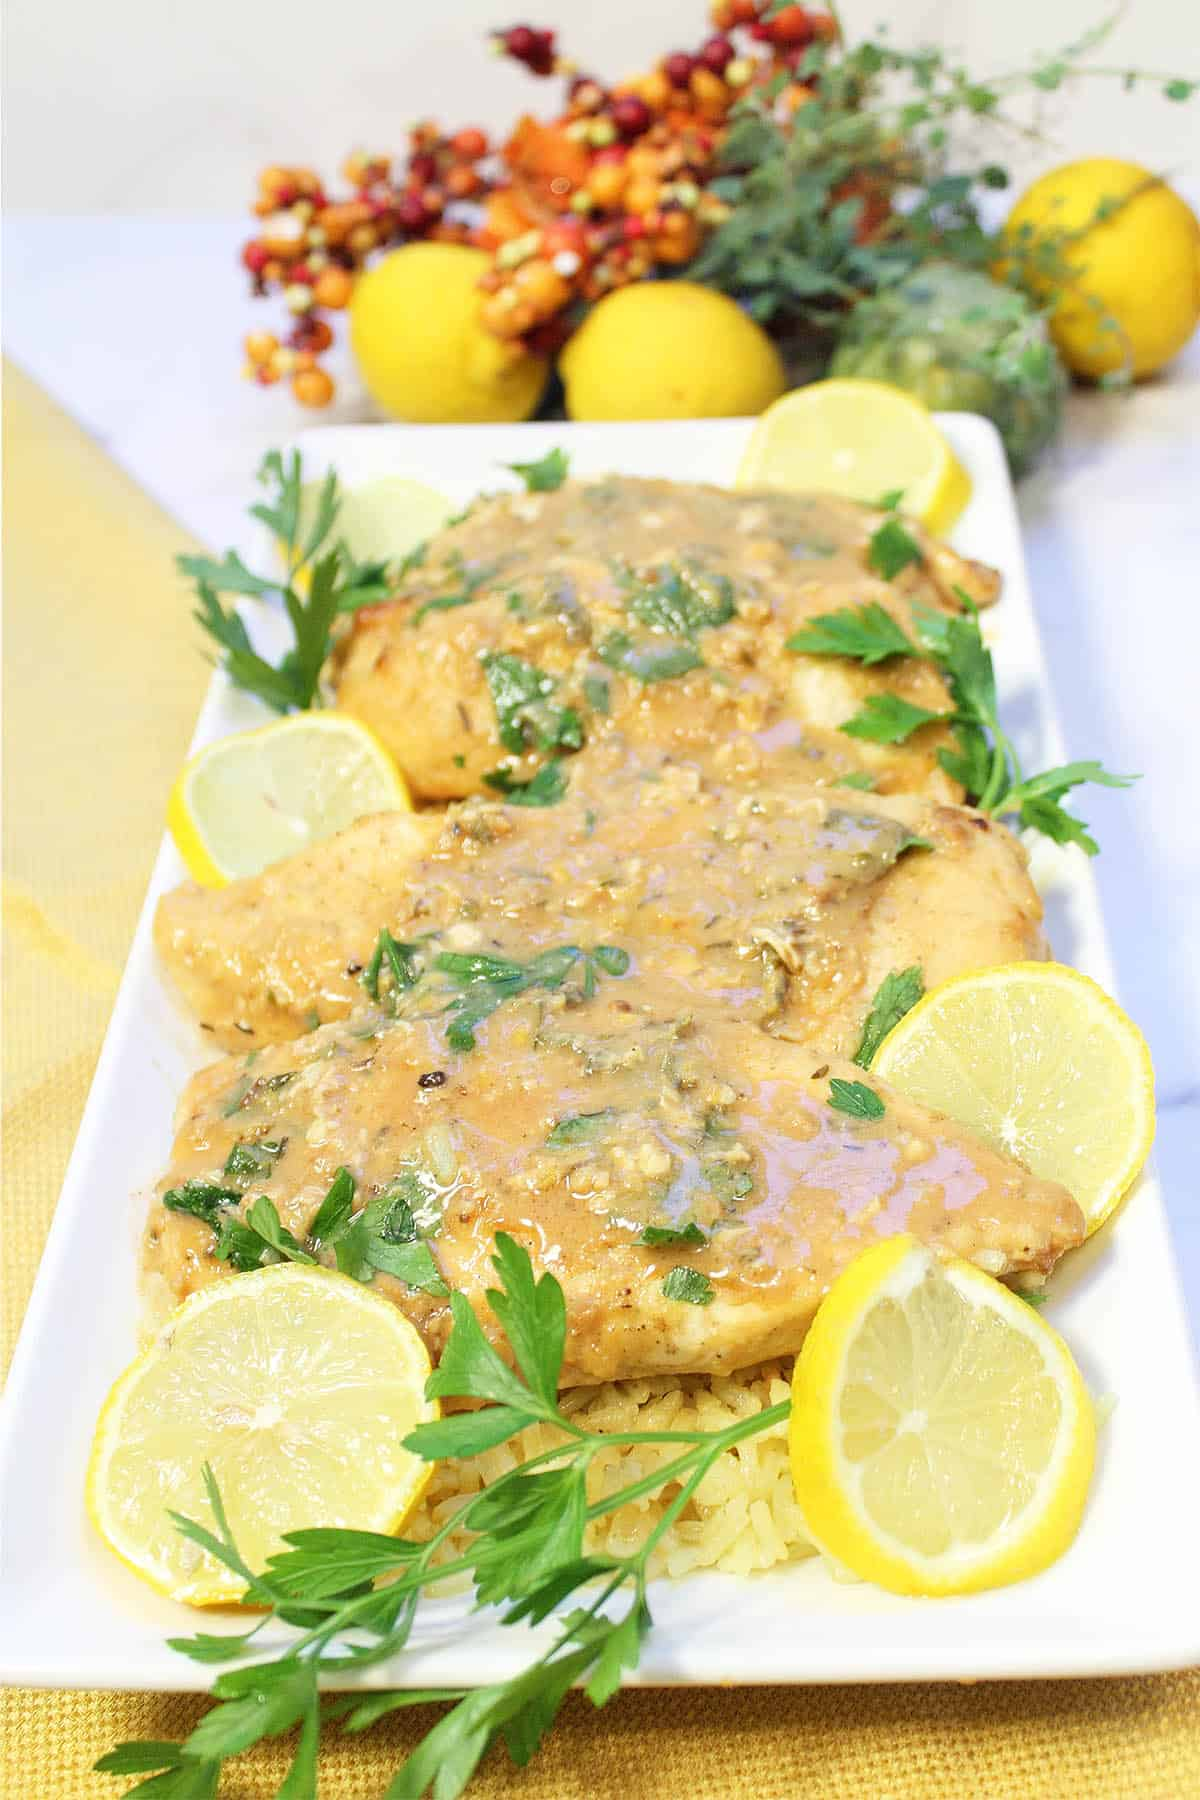 Chicken on white platter with wine sauce and garnished with lemon slices and parsley.